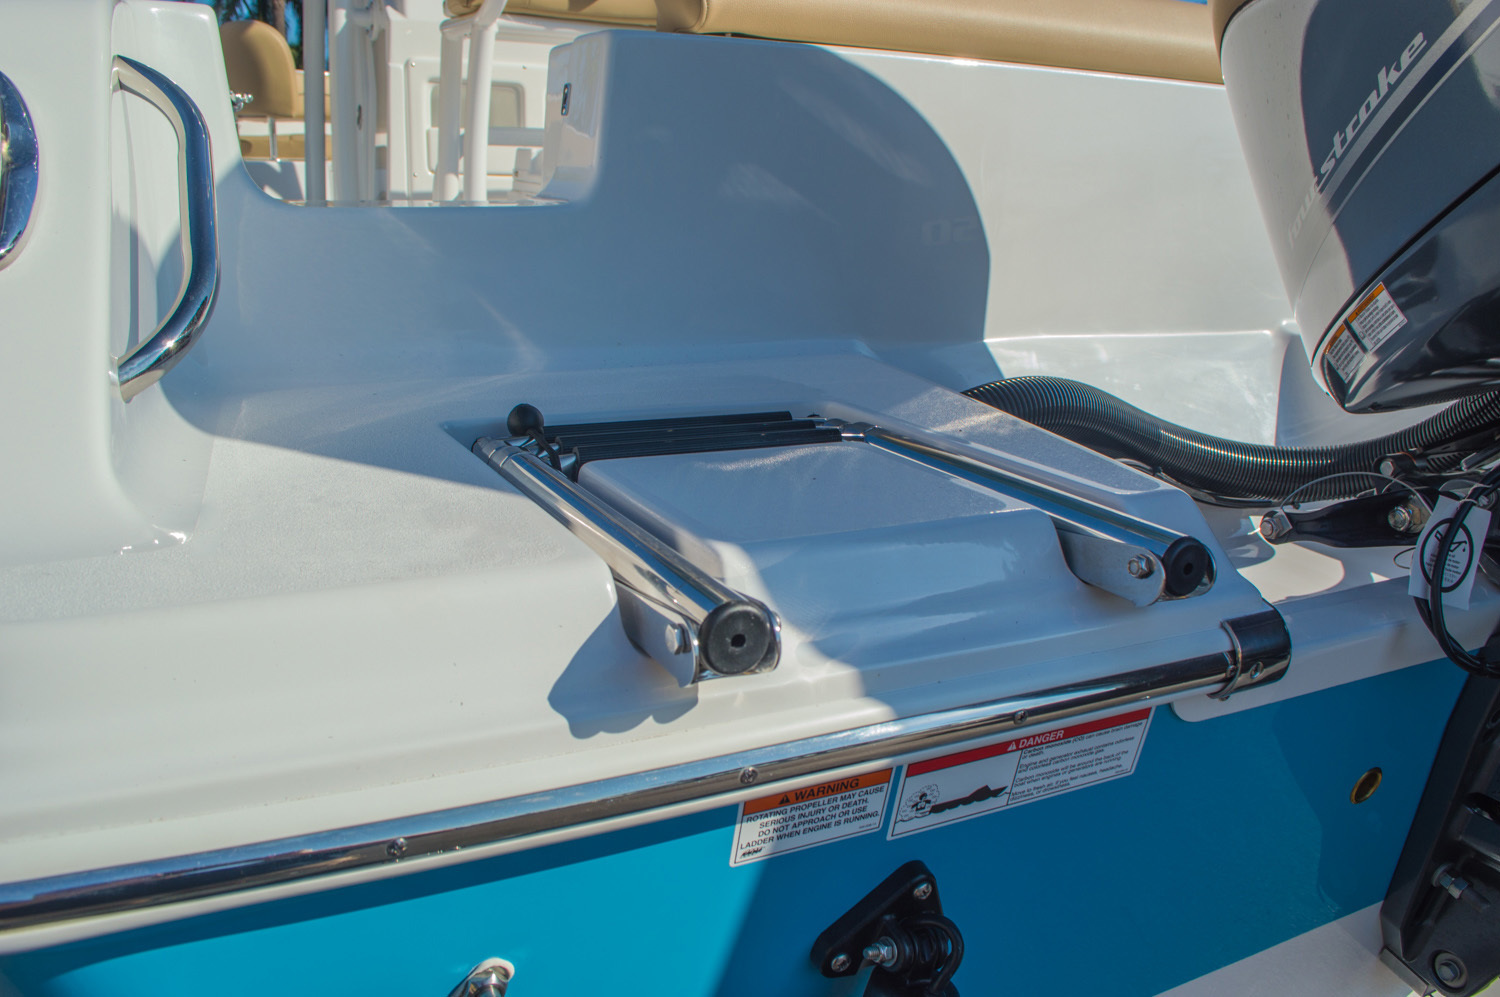 Thumbnail 11 for New 2016 Sportsman Open 212 Center Console boat for sale in West Palm Beach, FL